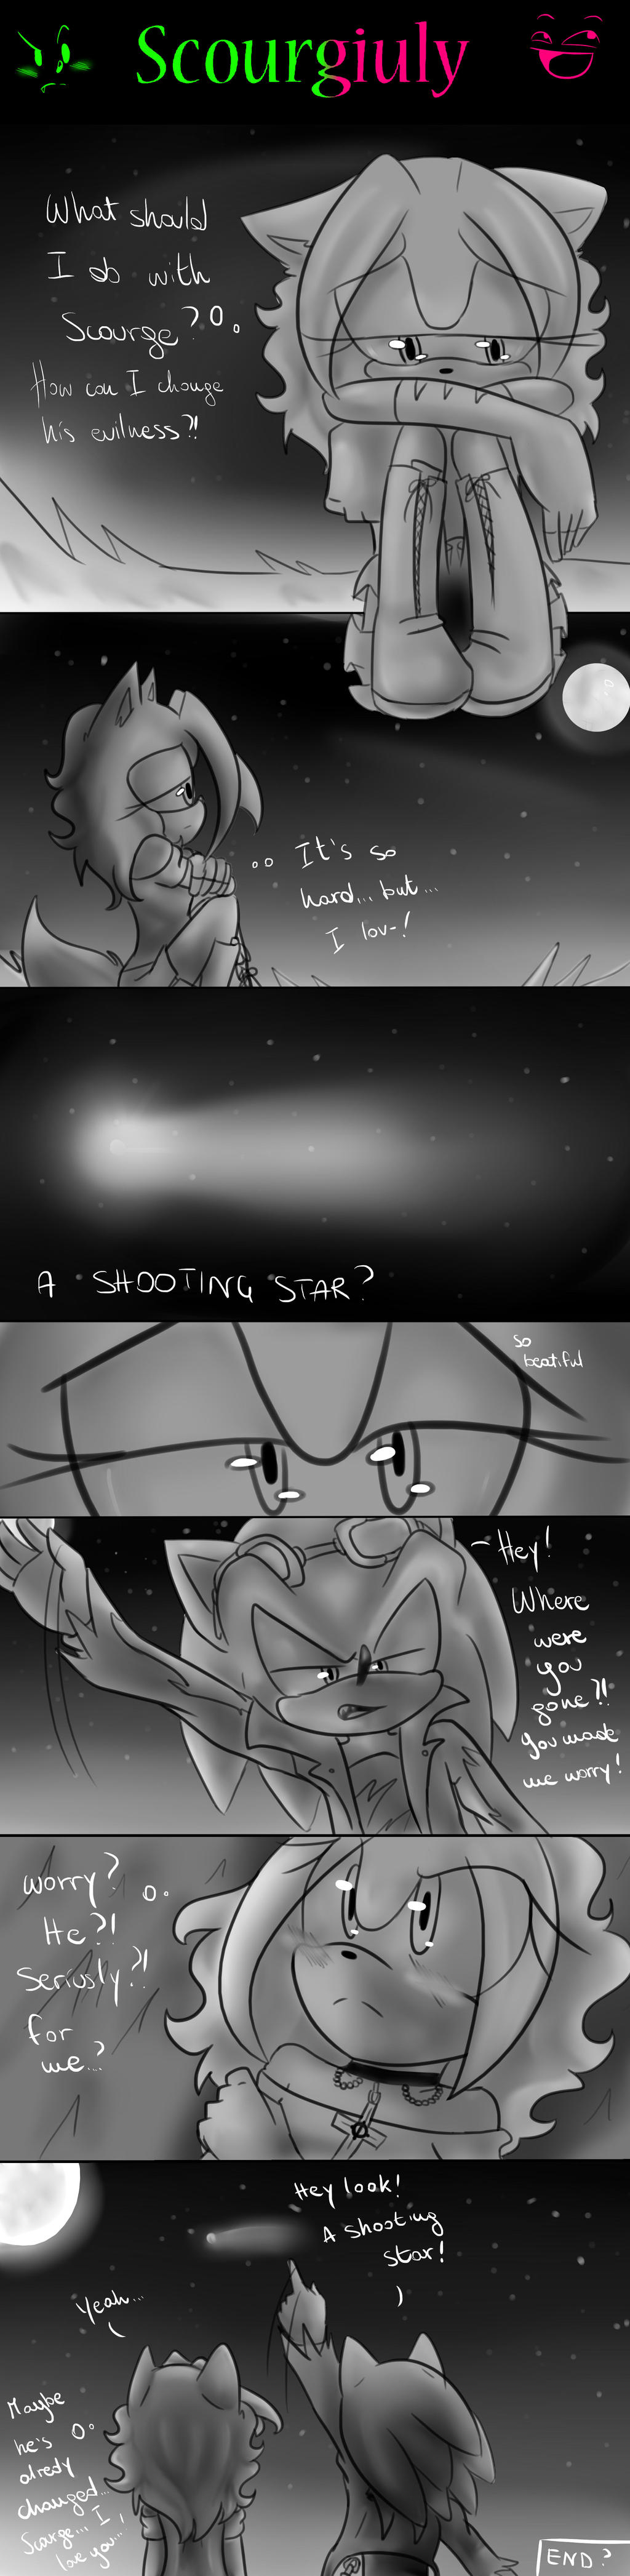 Scourgiuly comic : a Shooting star by GiulytheWolf